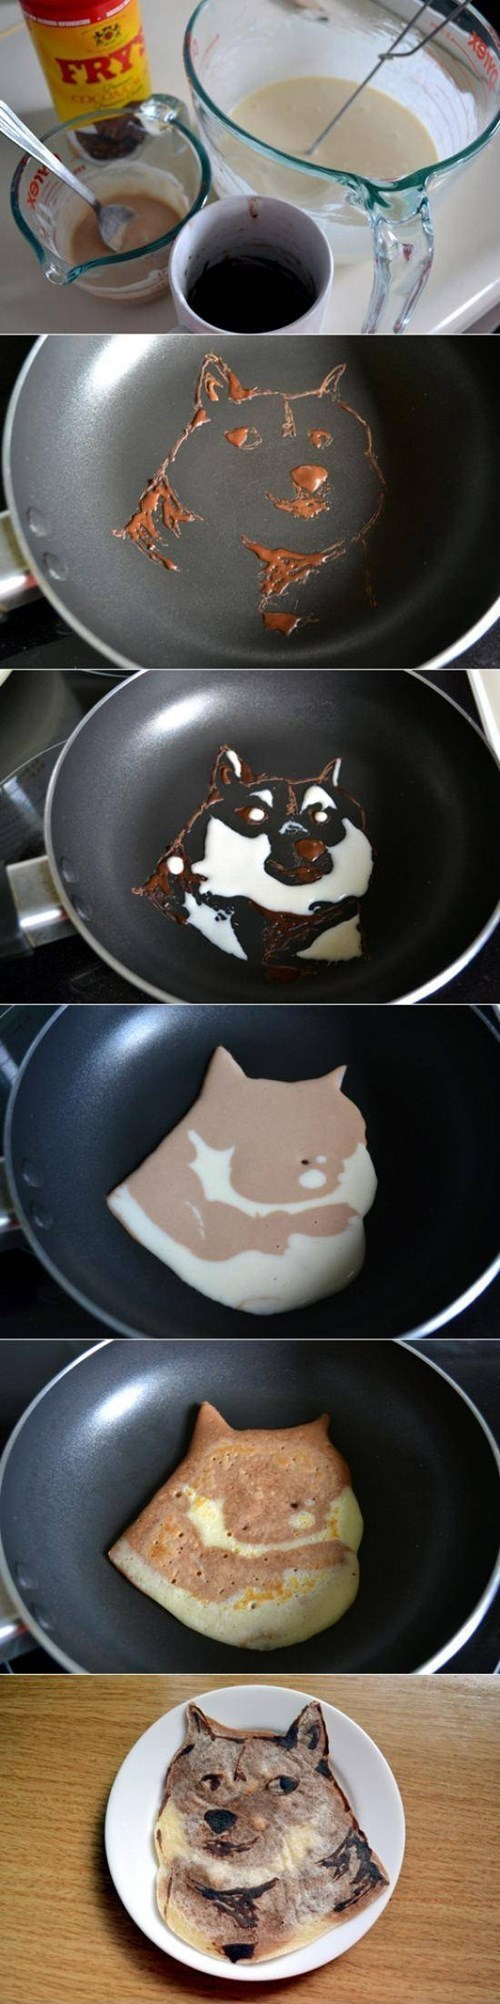 breakfast,pancakes,doge,g rated,win